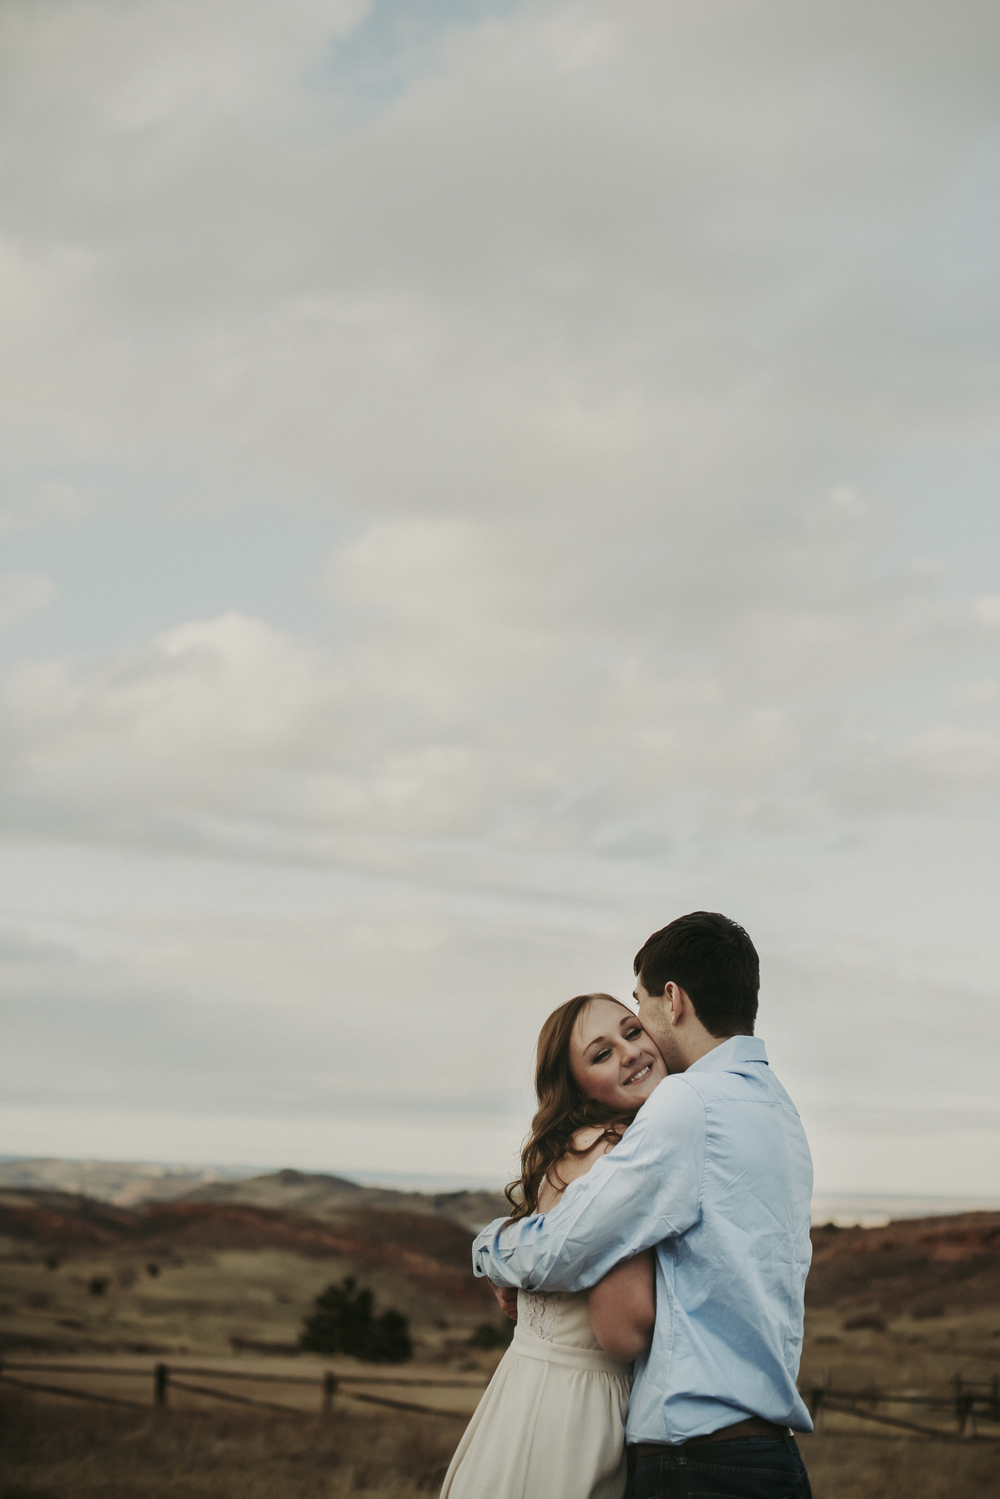 180416CHAI RYAN - COLORADO PHOTOGRAPHER - DEBI RAE PHOTOGRAPHY-9105.jpg